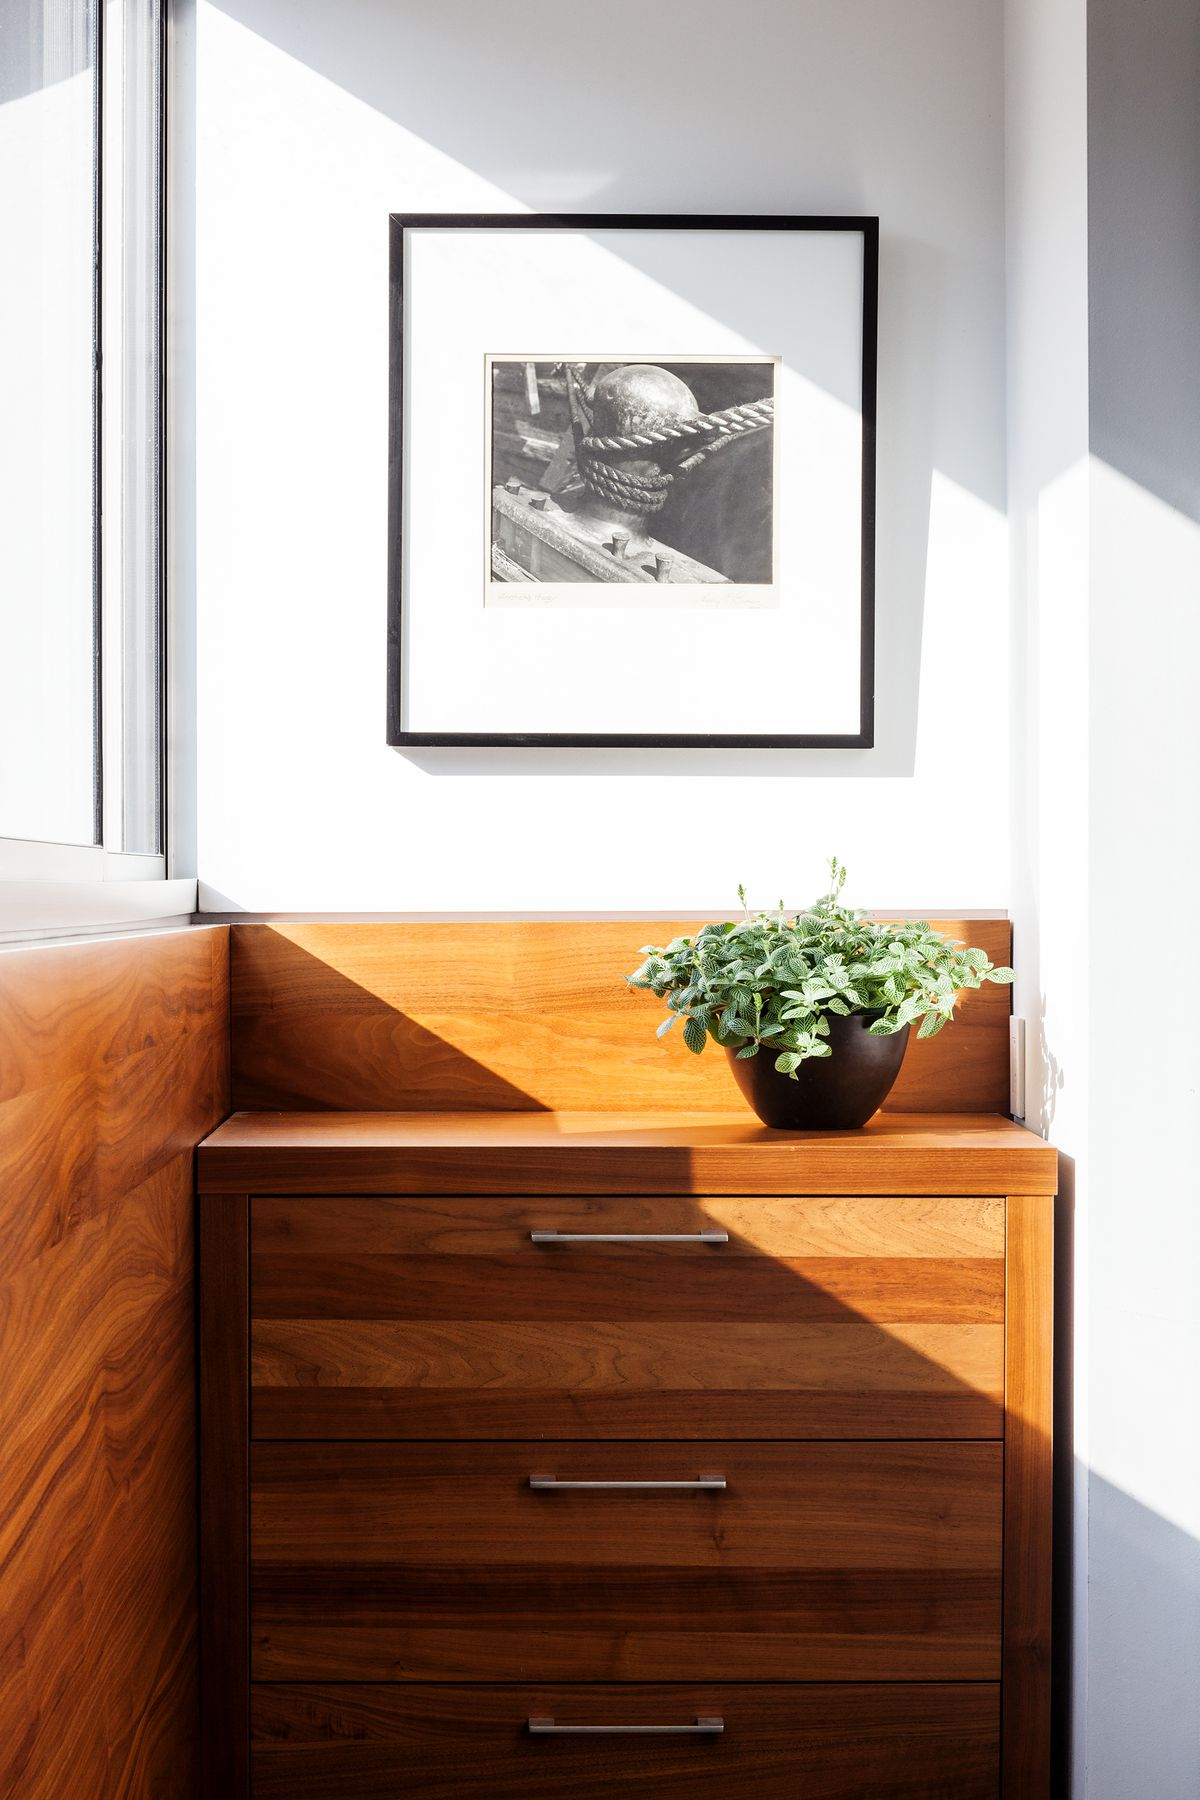 Detail of a room with wood wainscoting and a built-in dresser.